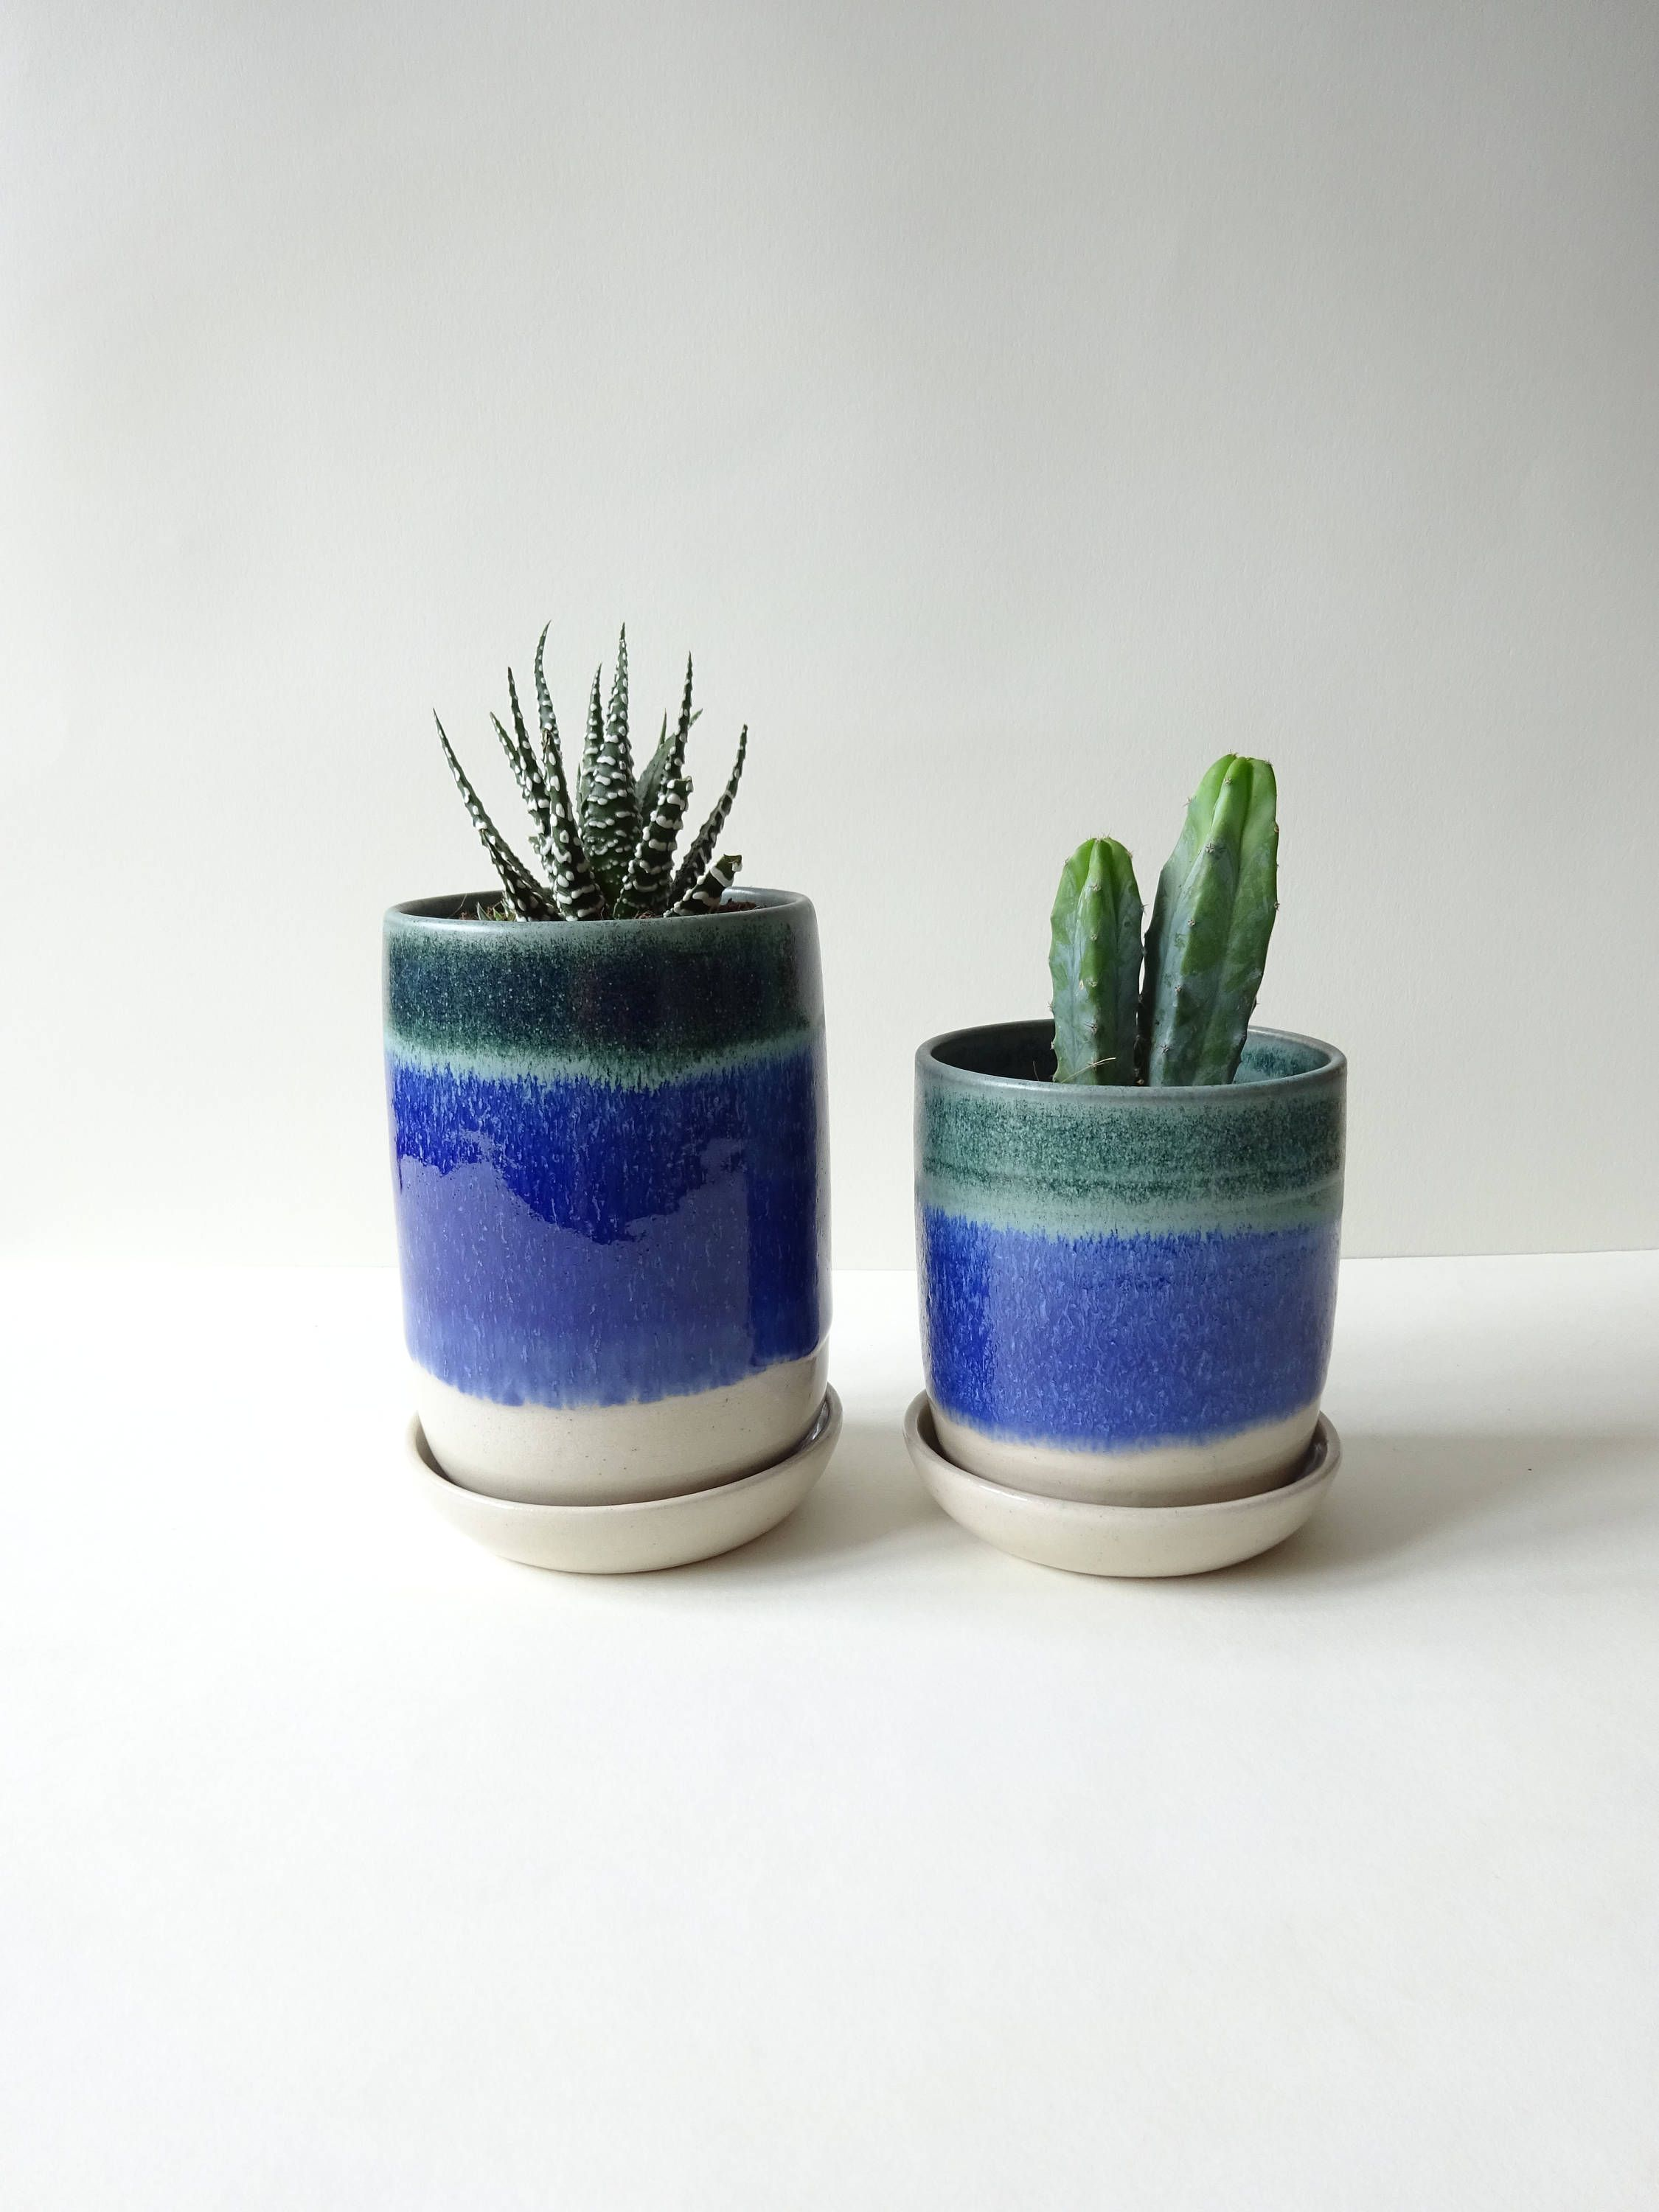 Set 2 Plant Pots With Drainage Hole And Tray Saucer Blue White Vase Handmade Ceramic Succulent Cacti Small Plants